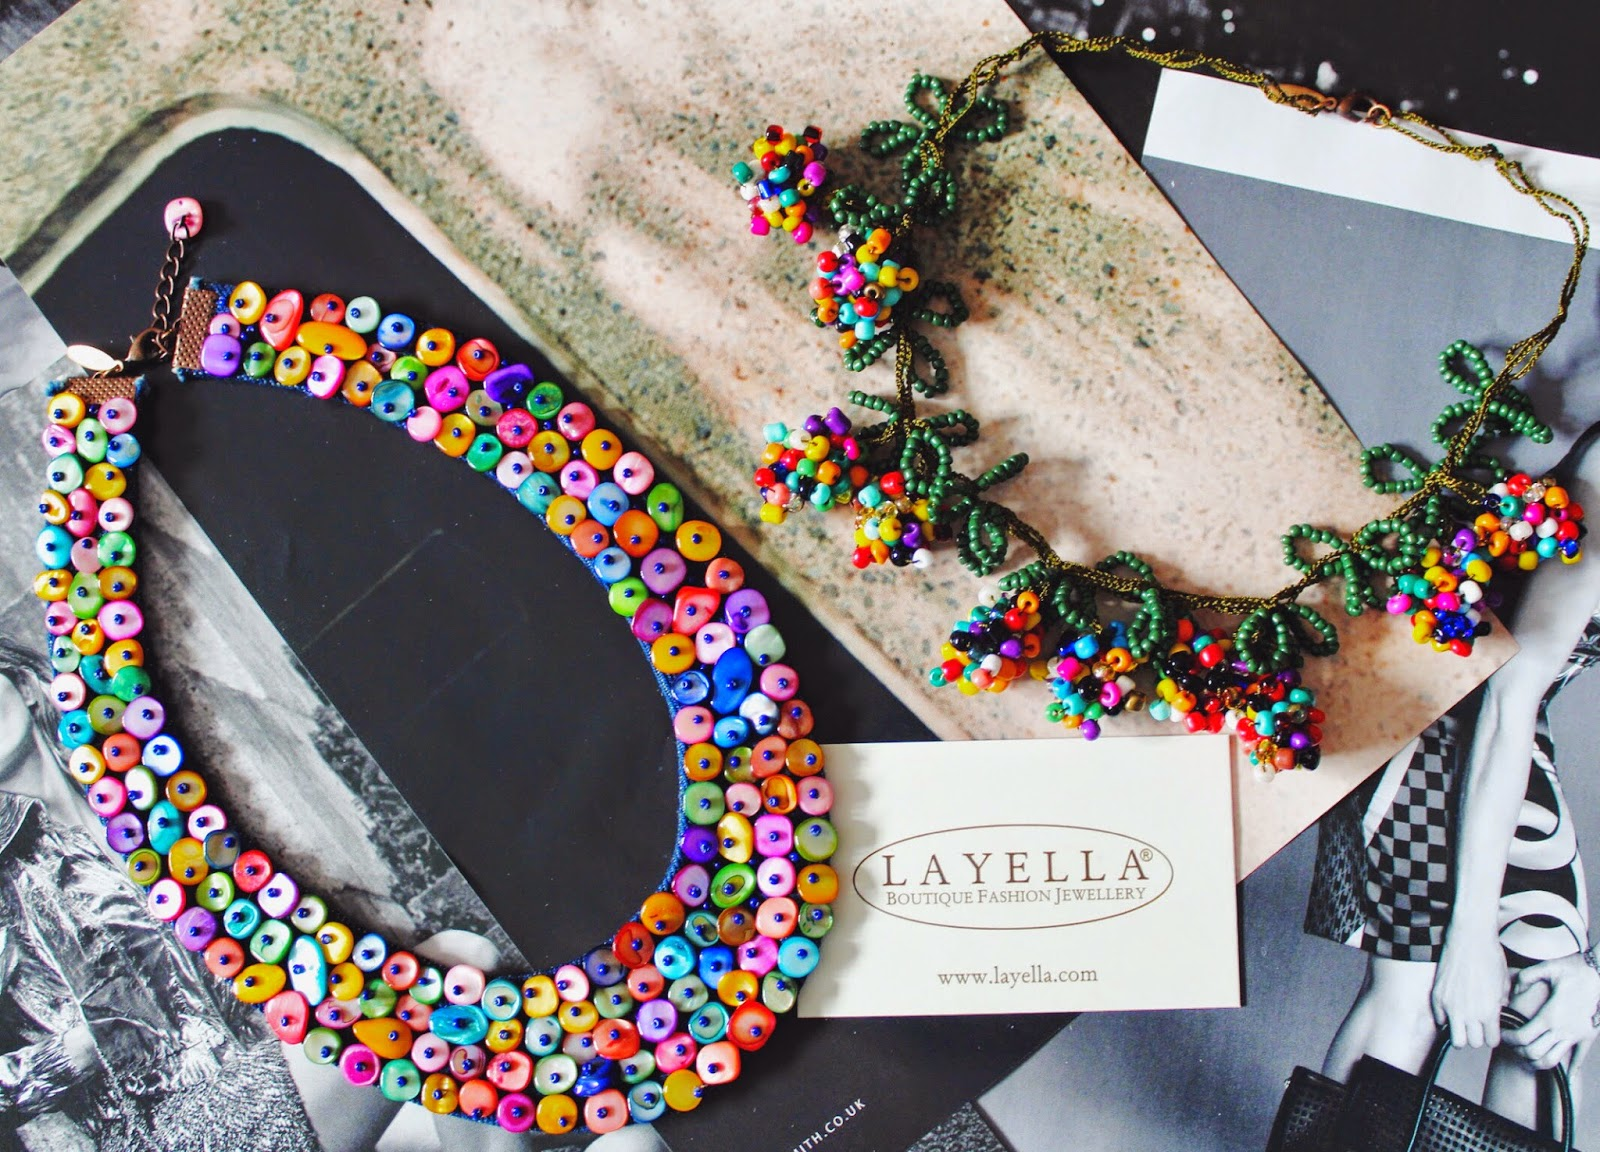 layella, layellajewellery, necklaces, boutique, neckcollar, fbloggers, fblogger, fashion, fashionbloggers, accessories, wiw, whatimwearing, asseenoneme, lotd, lookoftheday, ootd, outfitoftheday, layellareview, halcyonvelvet